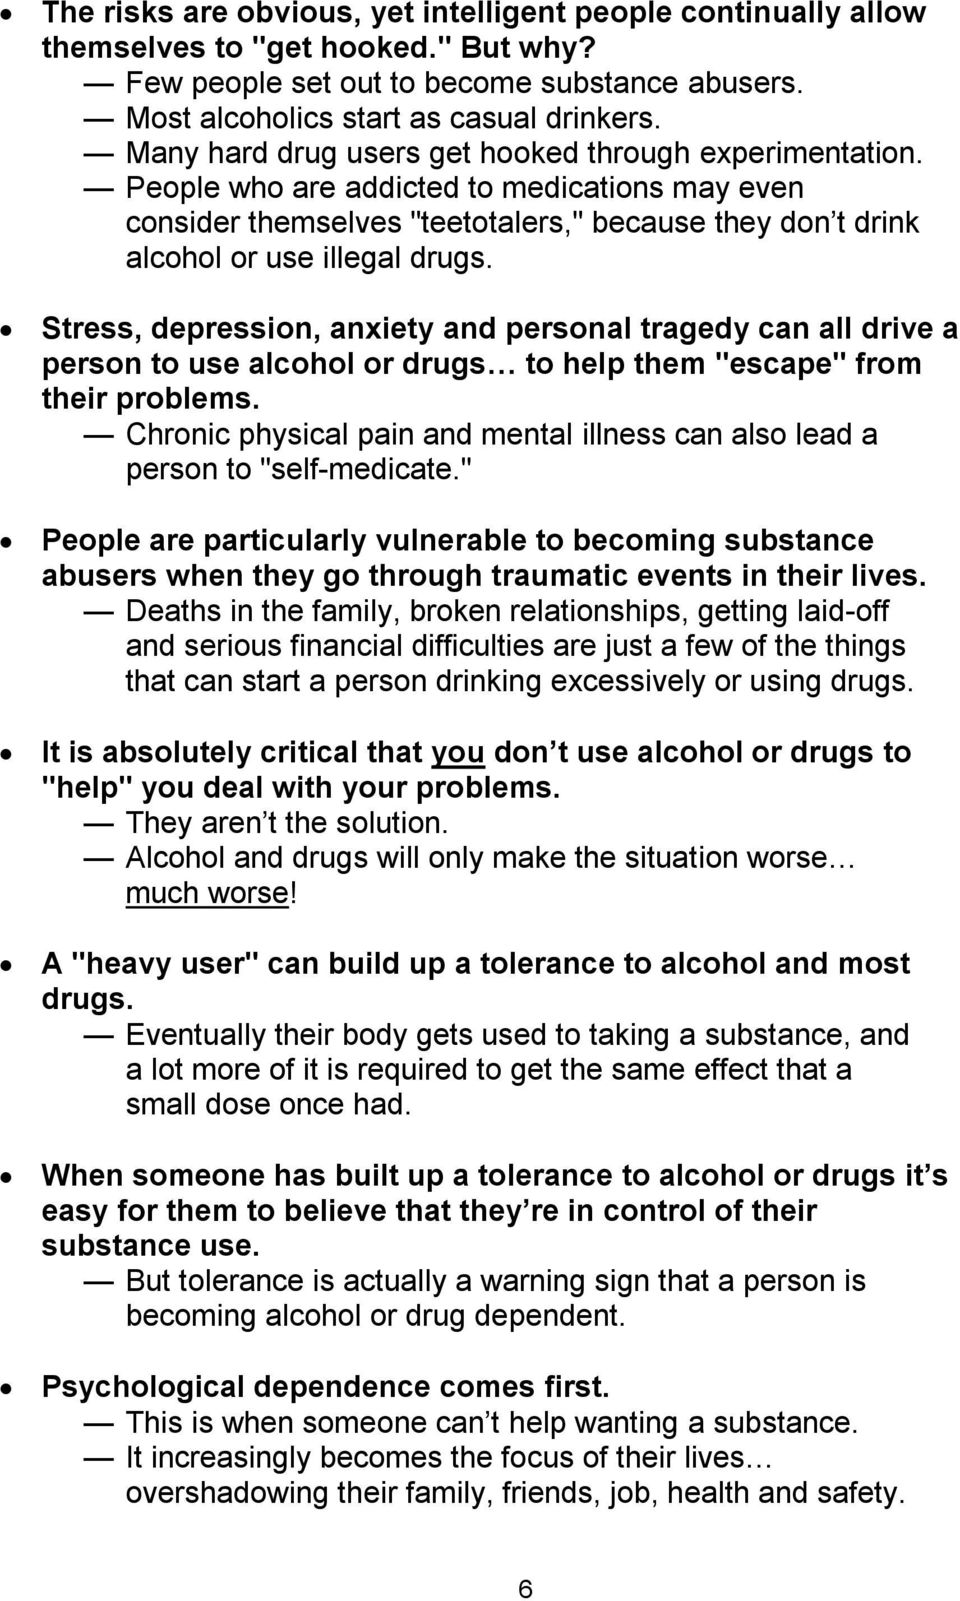 "Stress, depression, anxiety and personal tragedy can all drive a person to use alcohol or drugs to help them ""escape"" from their problems."